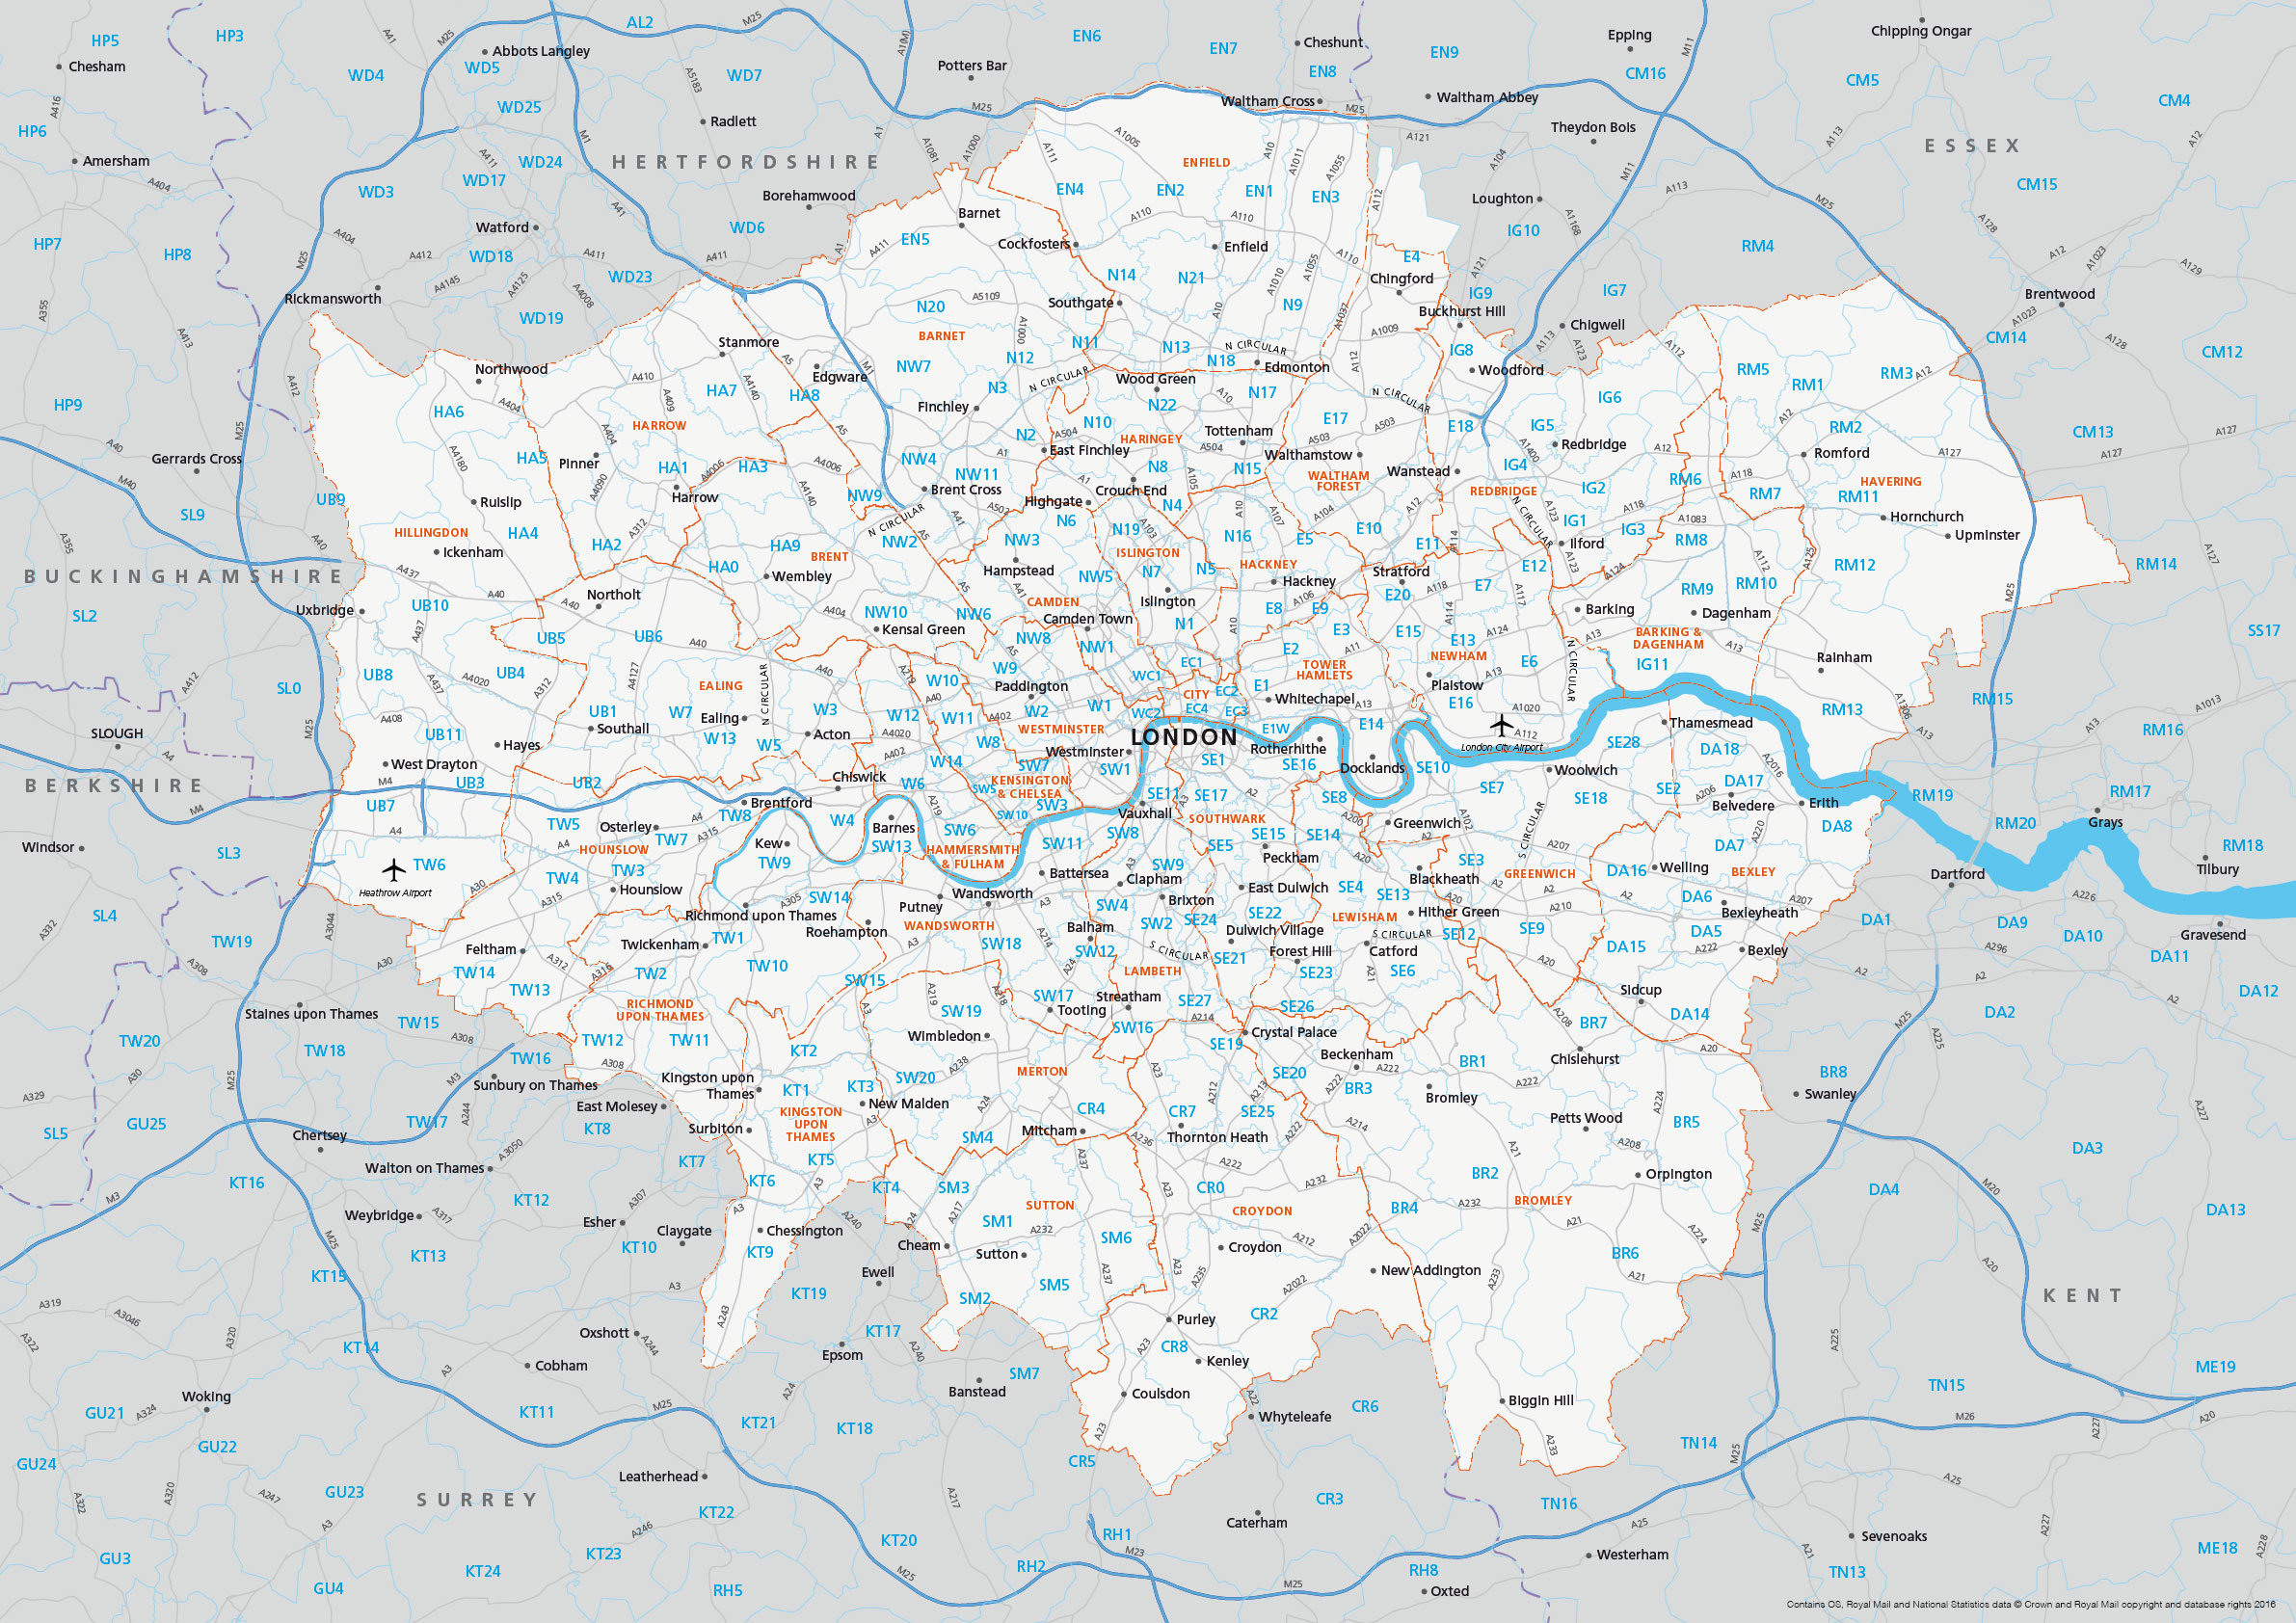 Map Of Greater London Area.Map Of Greater London Postcode Districts Plus Boroughs And Major